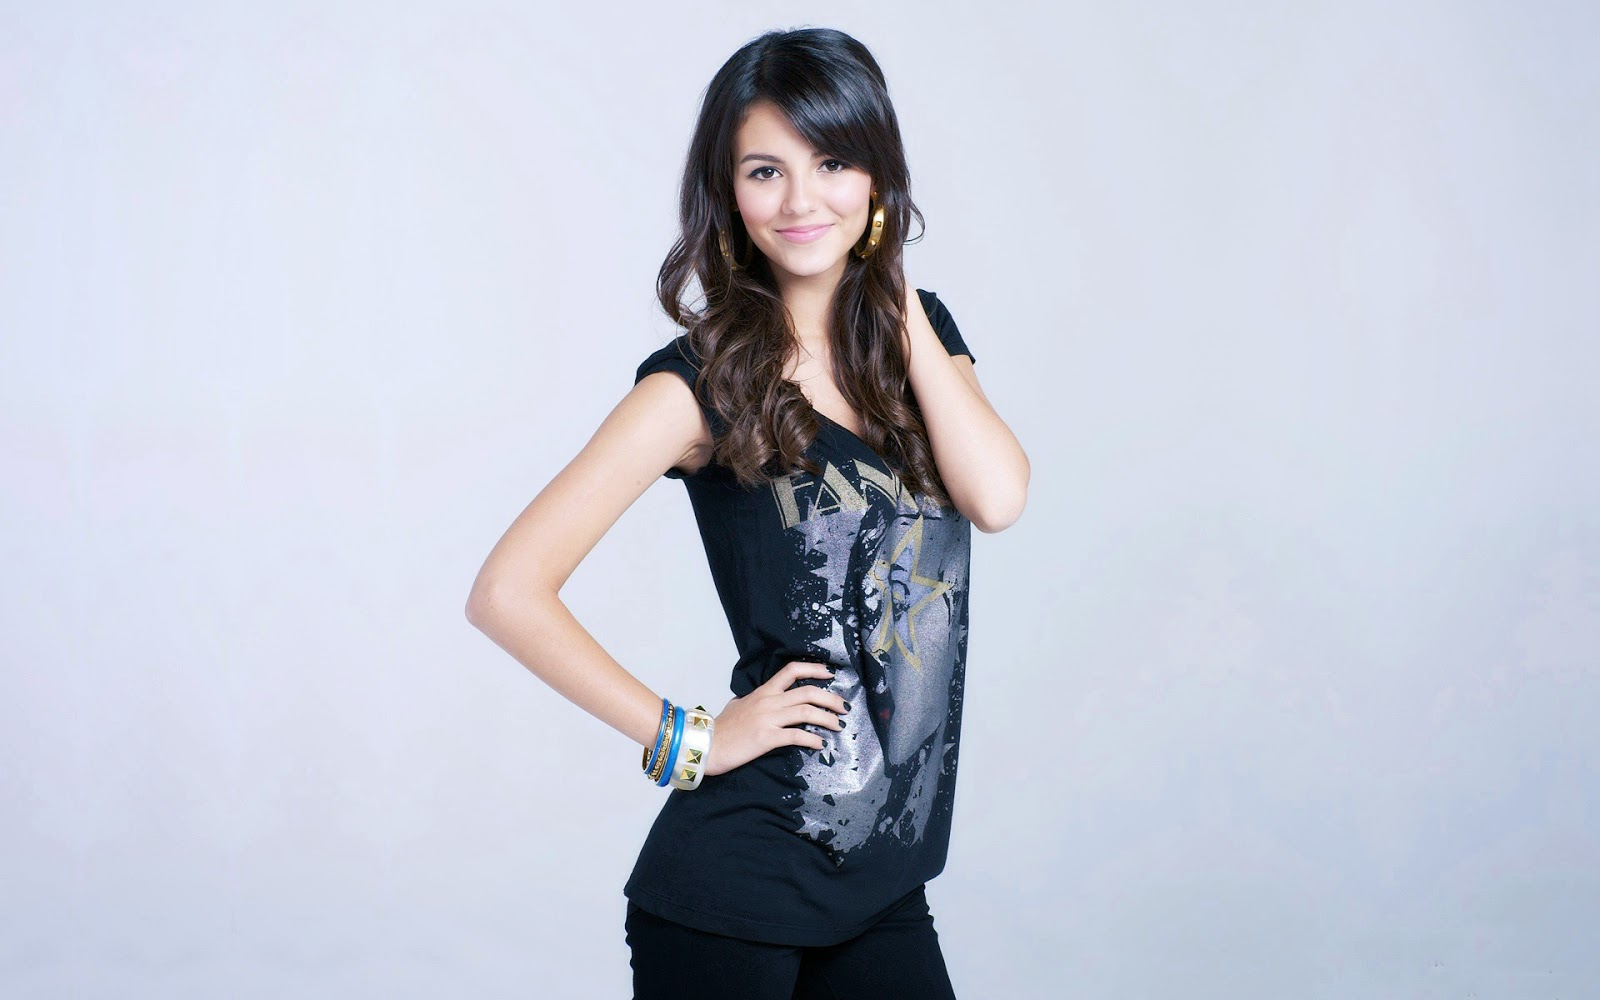 victorious wallpaper top model - photo #1